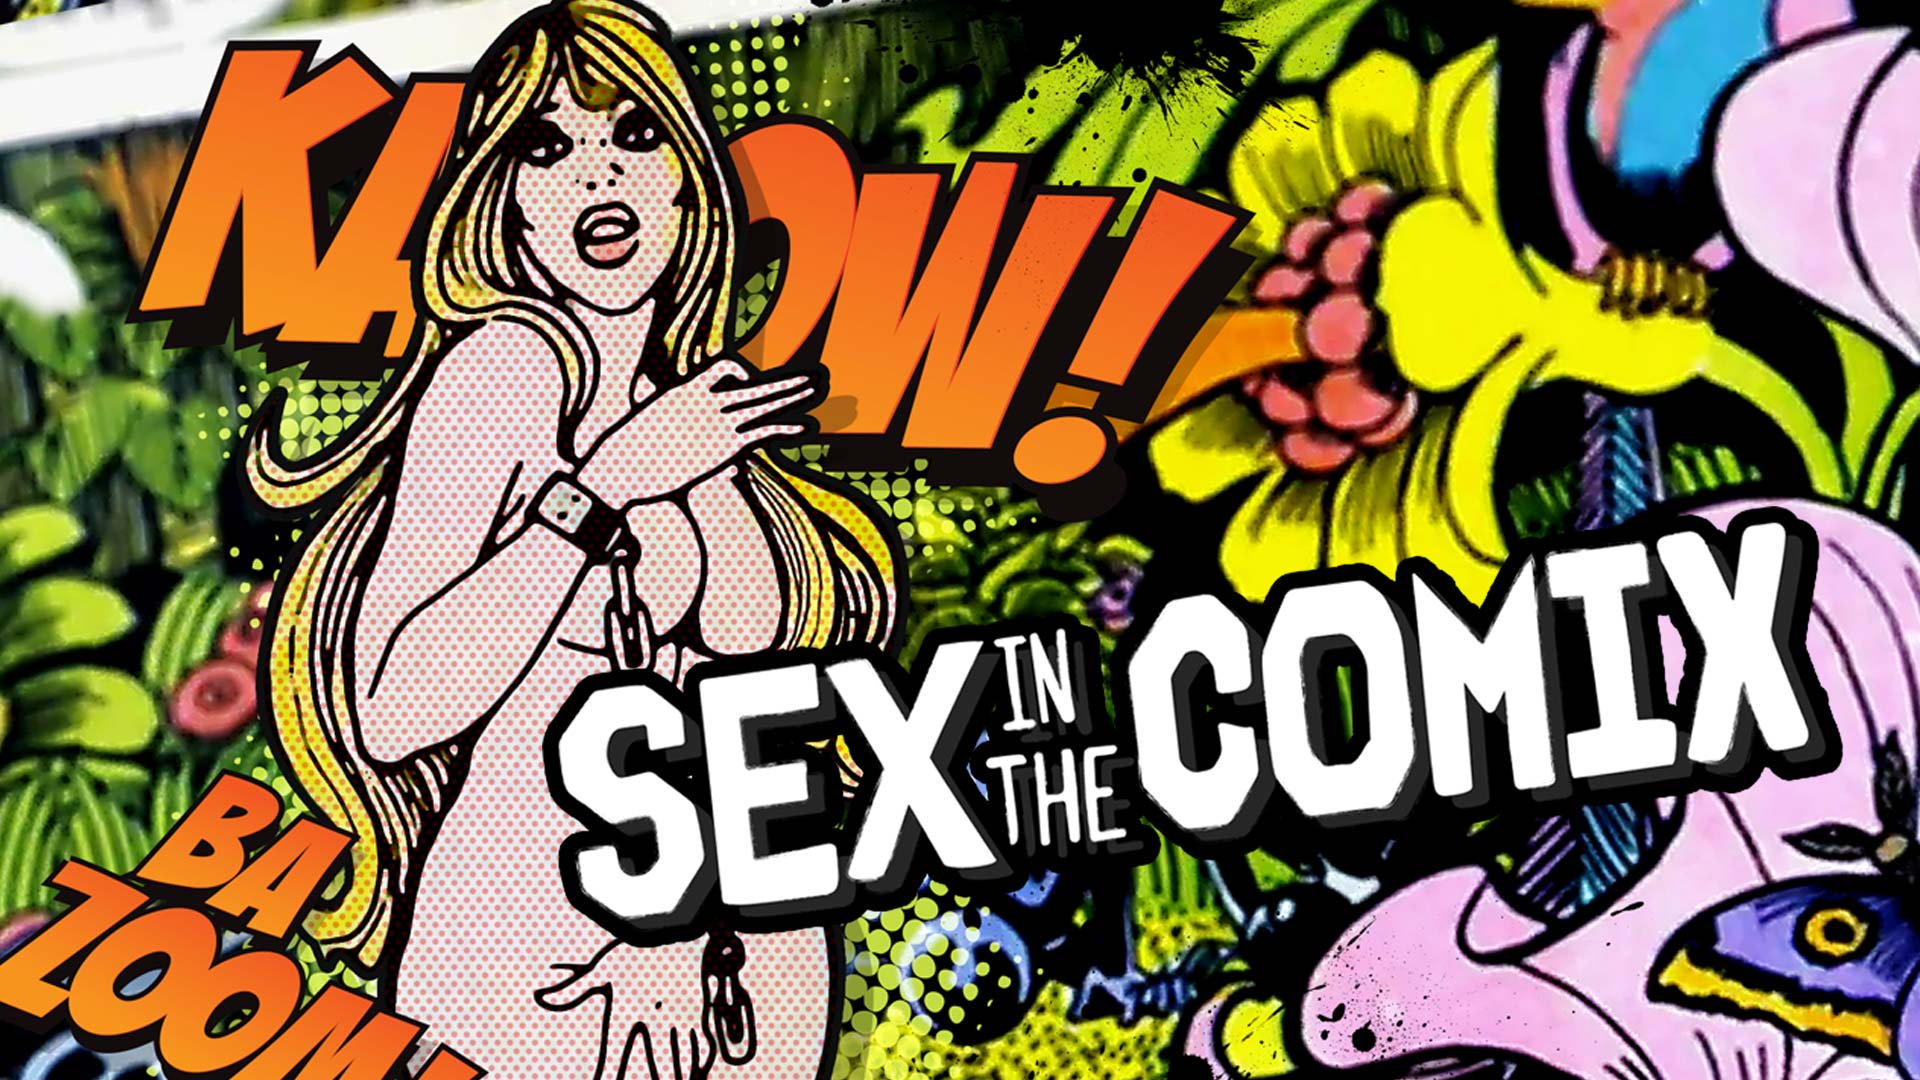 Sex in the Comix - image